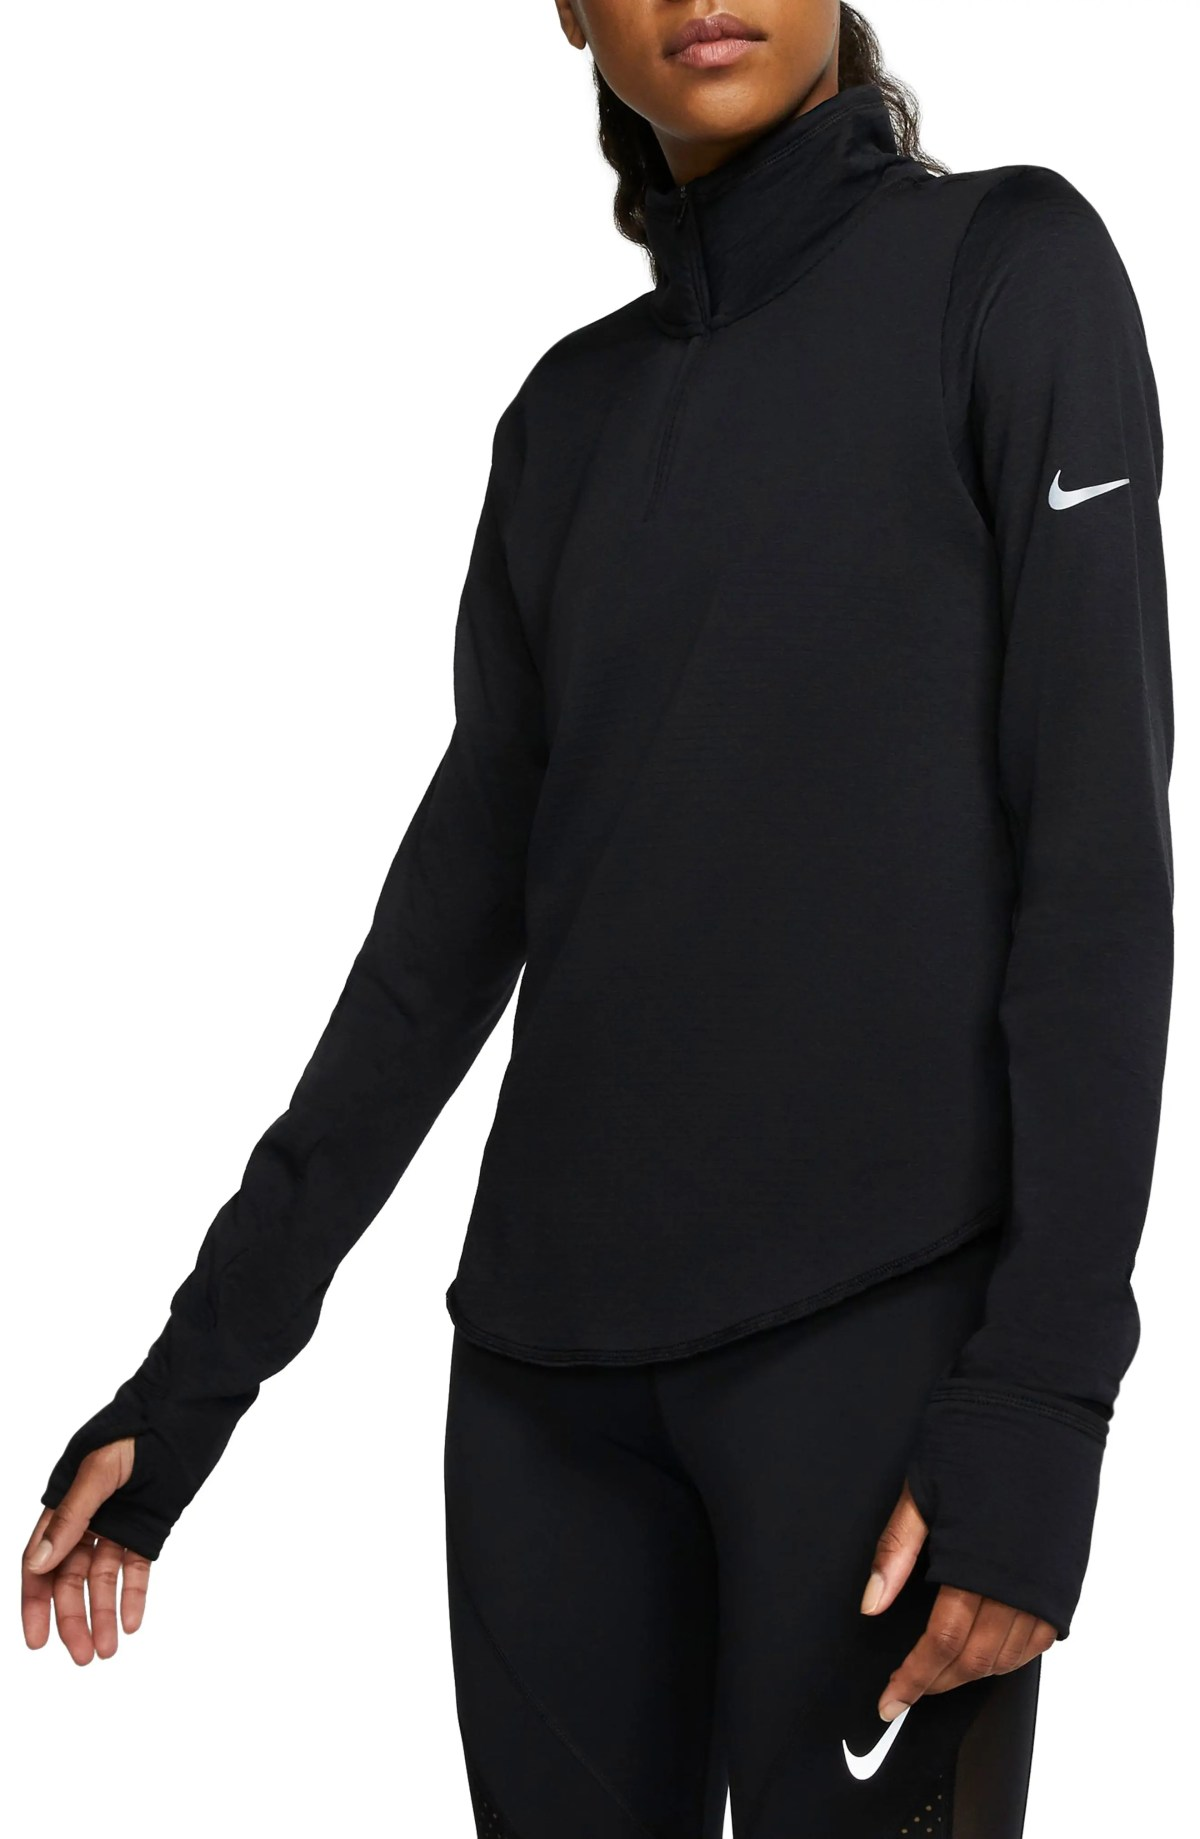 NIKE Sphere Element Half Zip Running Pullover, Main, color, BLACK/ REFLECTIVE SILV